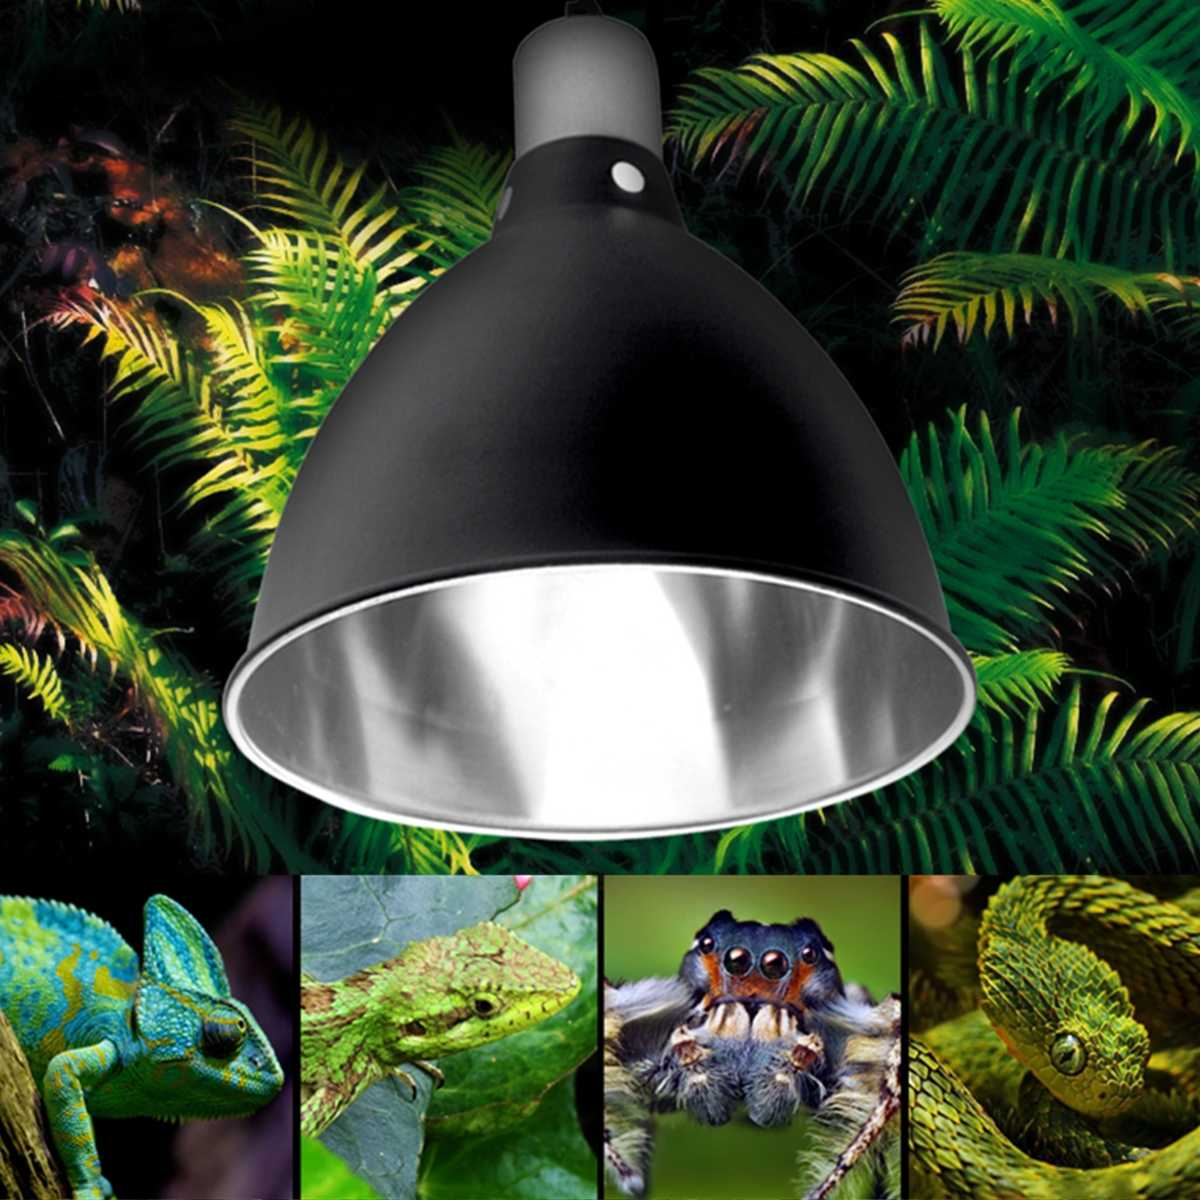 E27 Ceramic Heat UV UVB Lamp Light Holder For Aquarium Amphibians Reptile Tortoise Lampshade with Switch